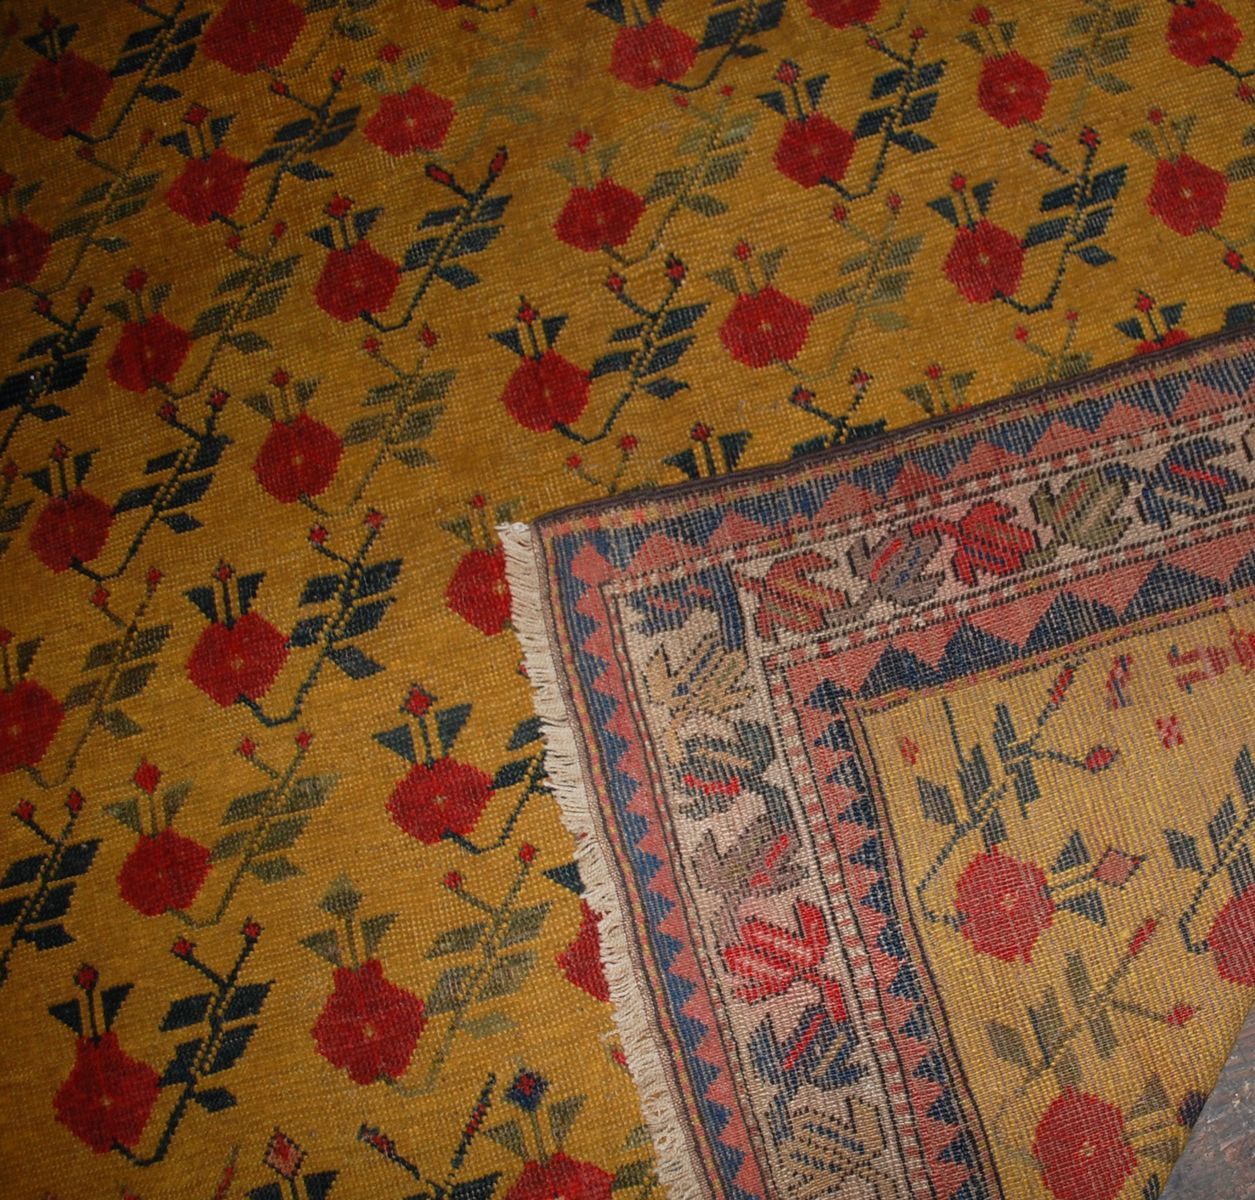 Caucasian Rugs Uk: Antique Handmade Caucasian Karabagh Rug, 1880s For Sale At